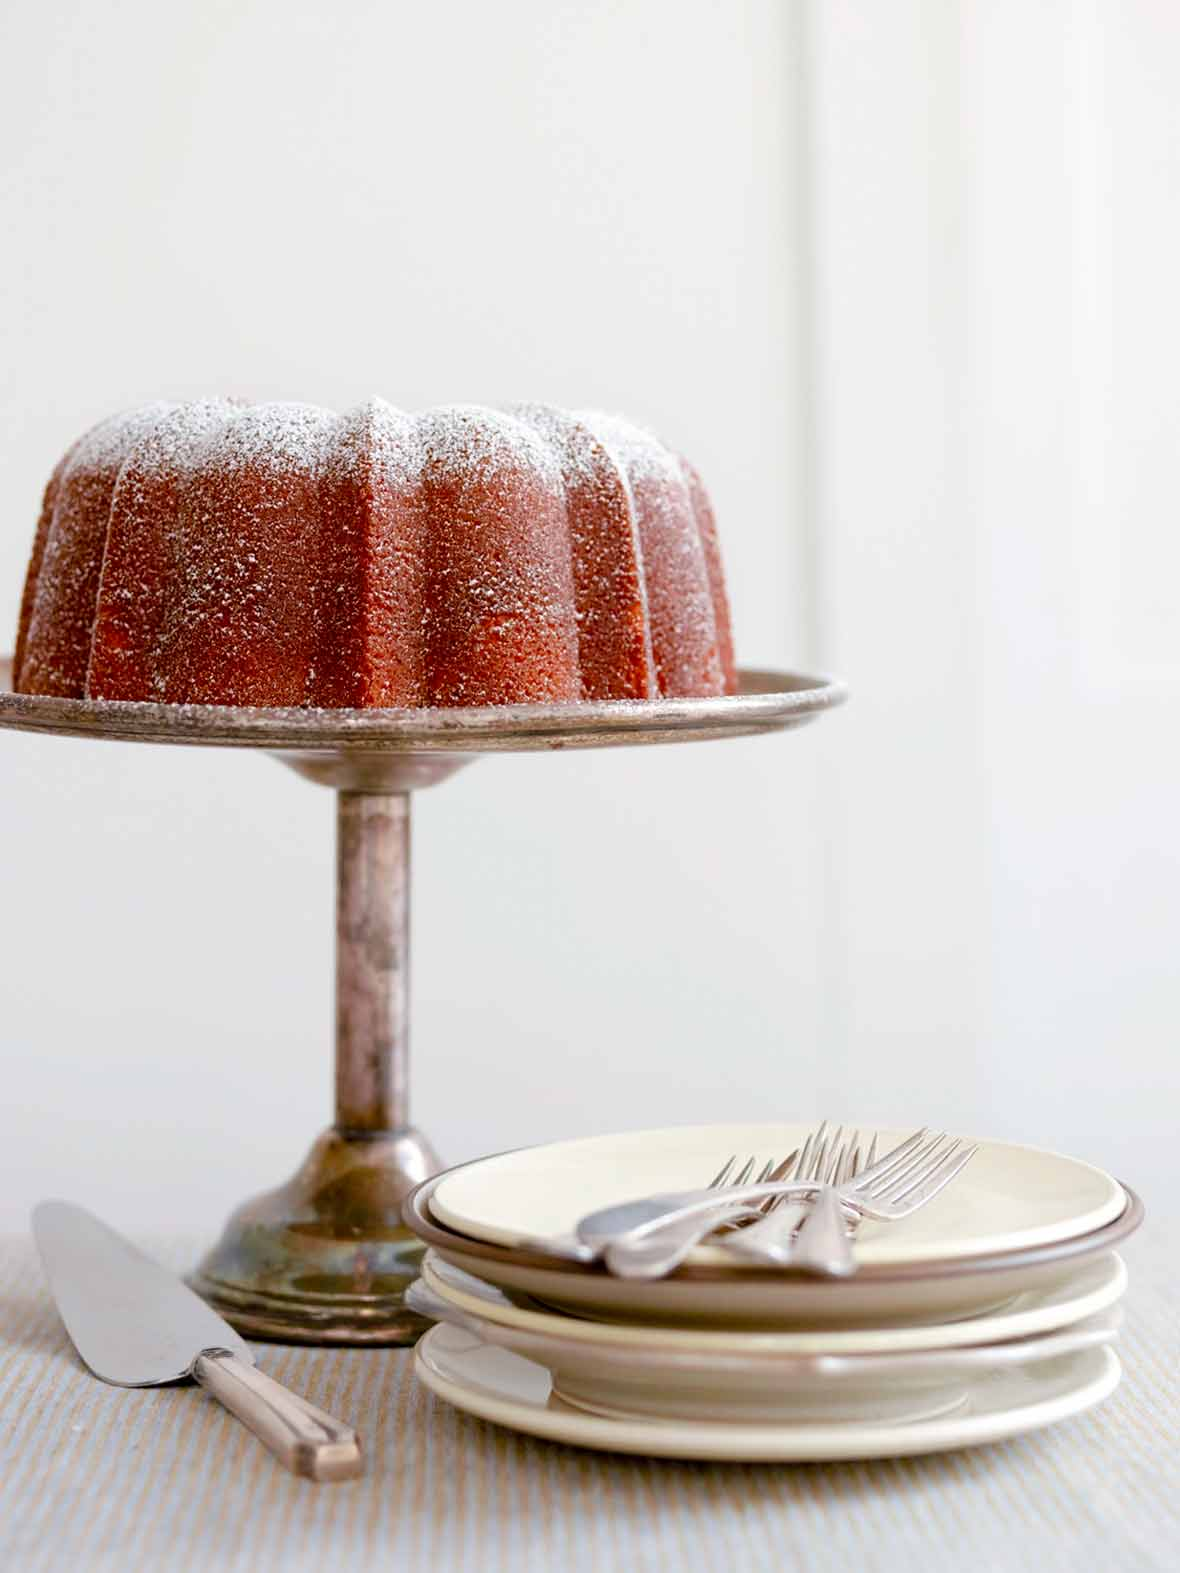 A Portuguese orange olive oil cake, dusted with confectioners' sugar on a silver cake stand.